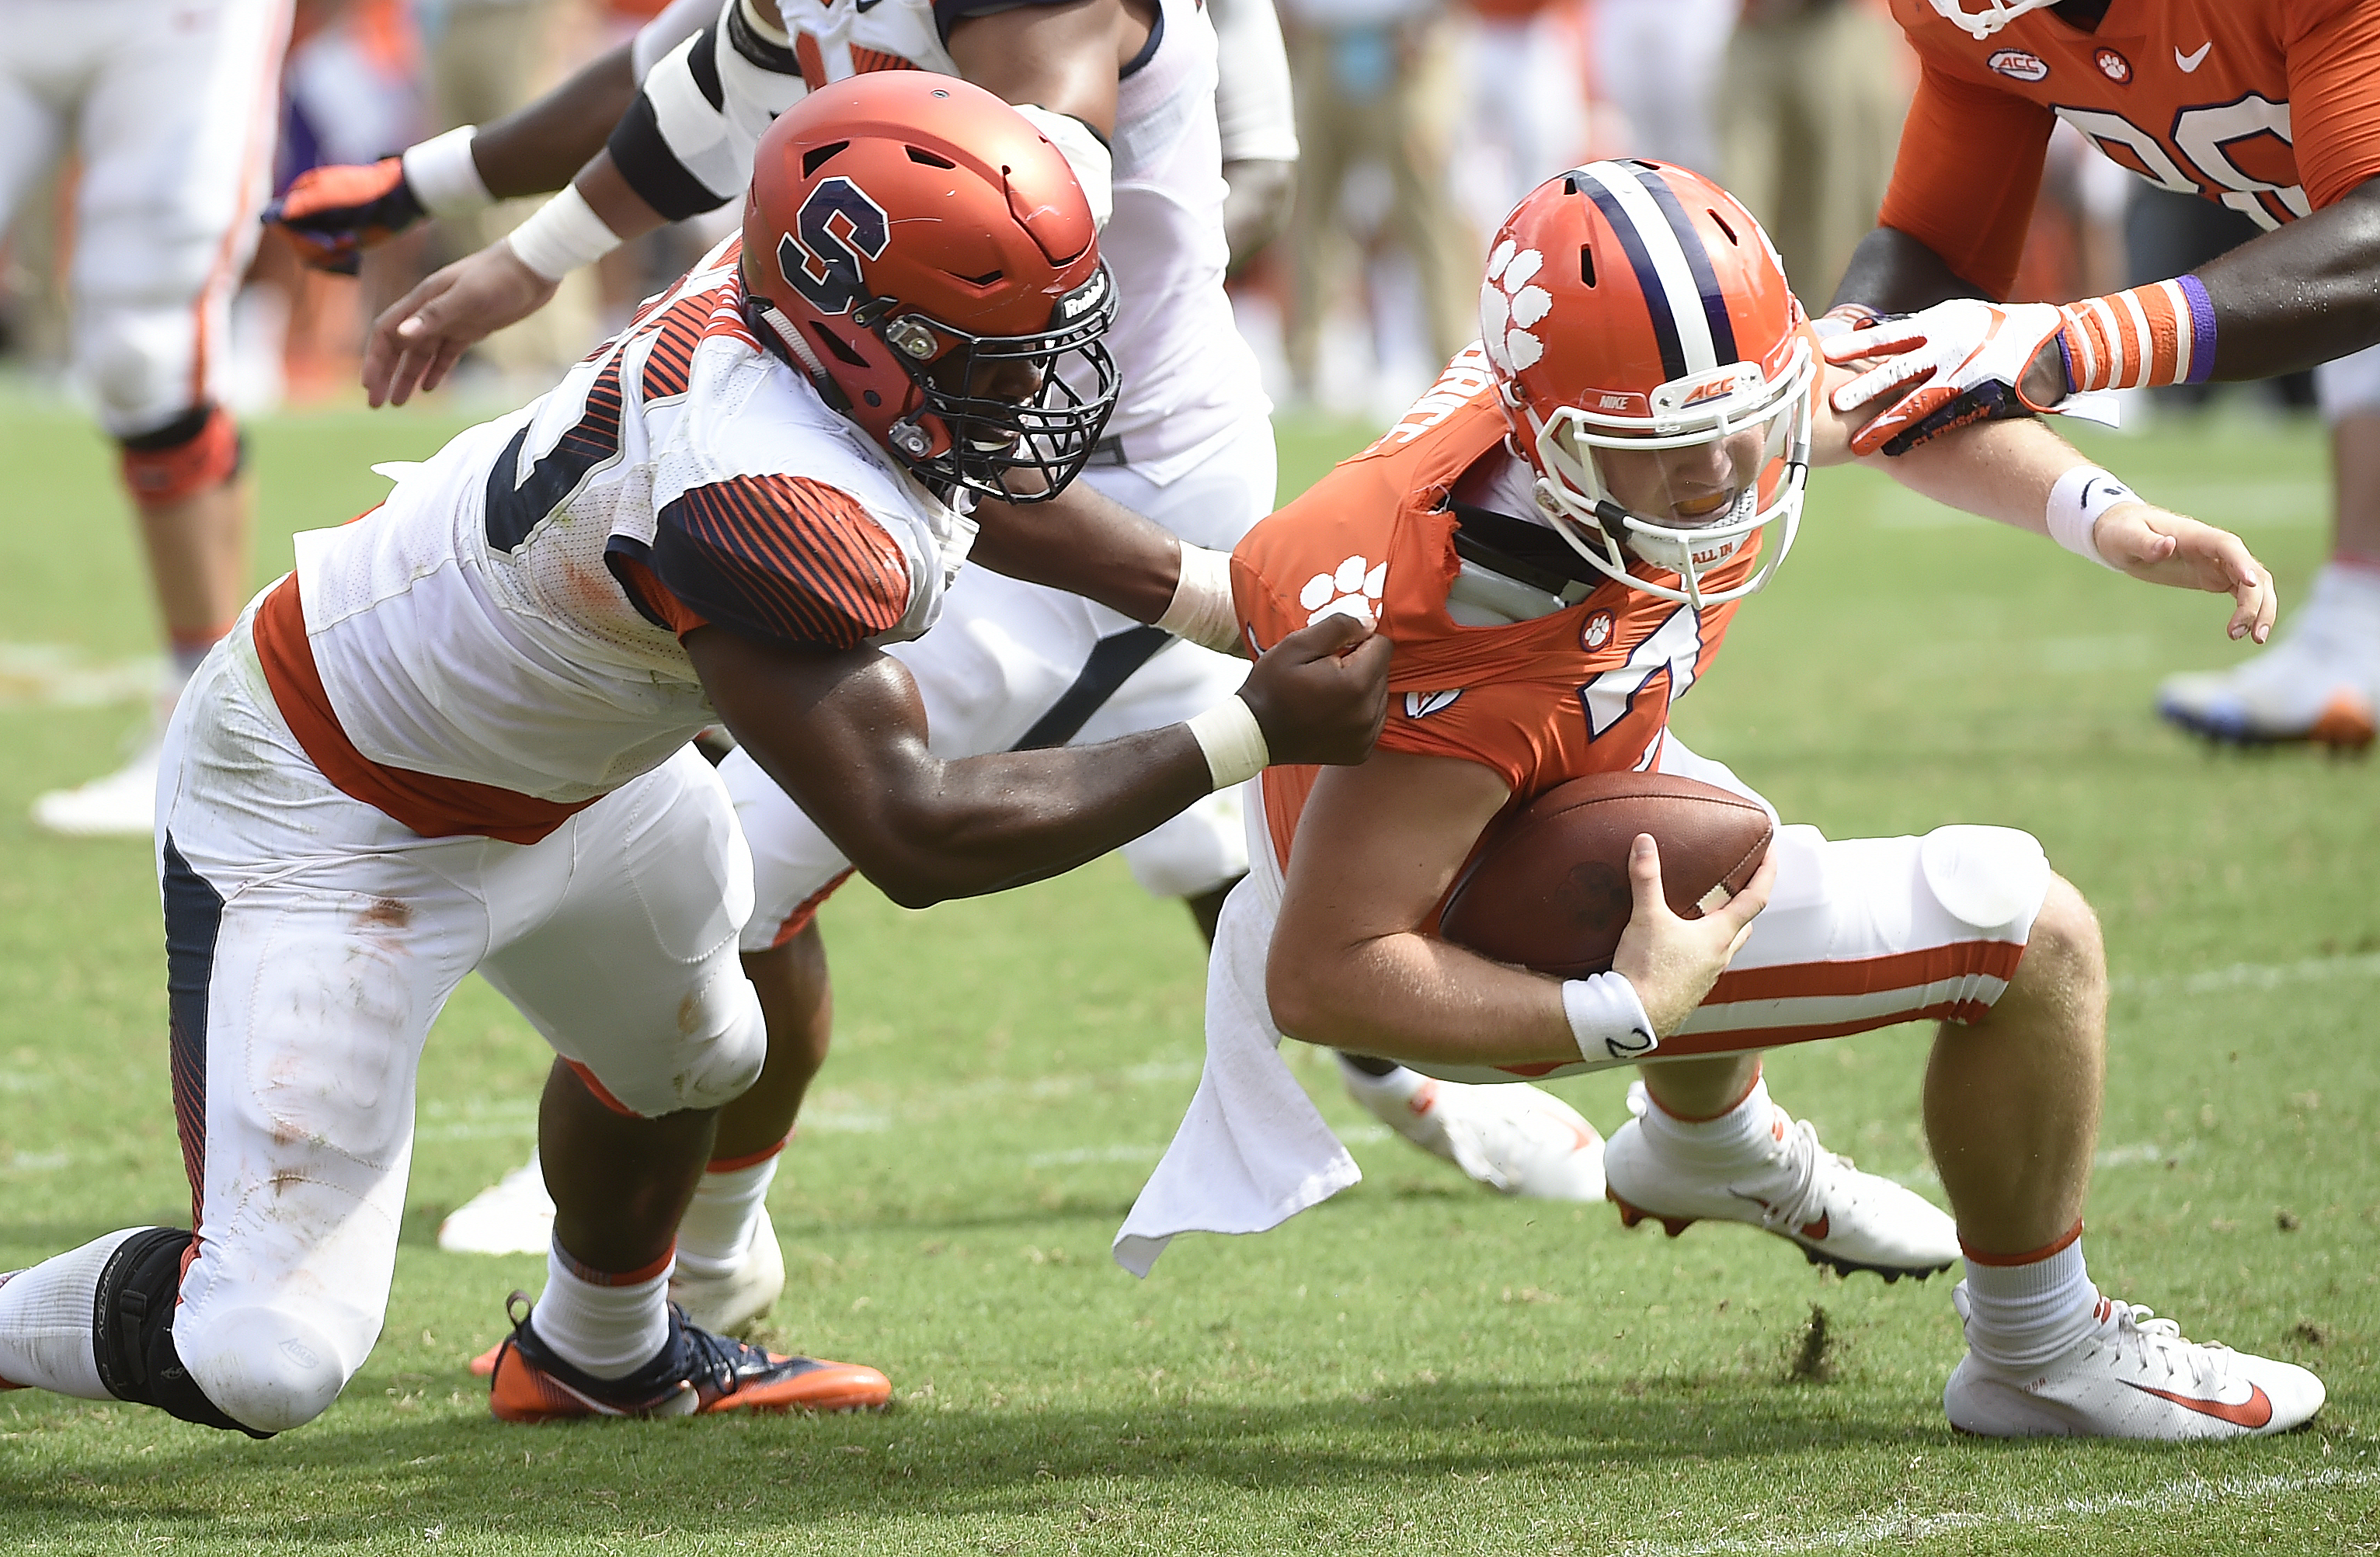 Syracuse football embraces underdog mentality; James Harden remembers Wes Johnson crossover; more